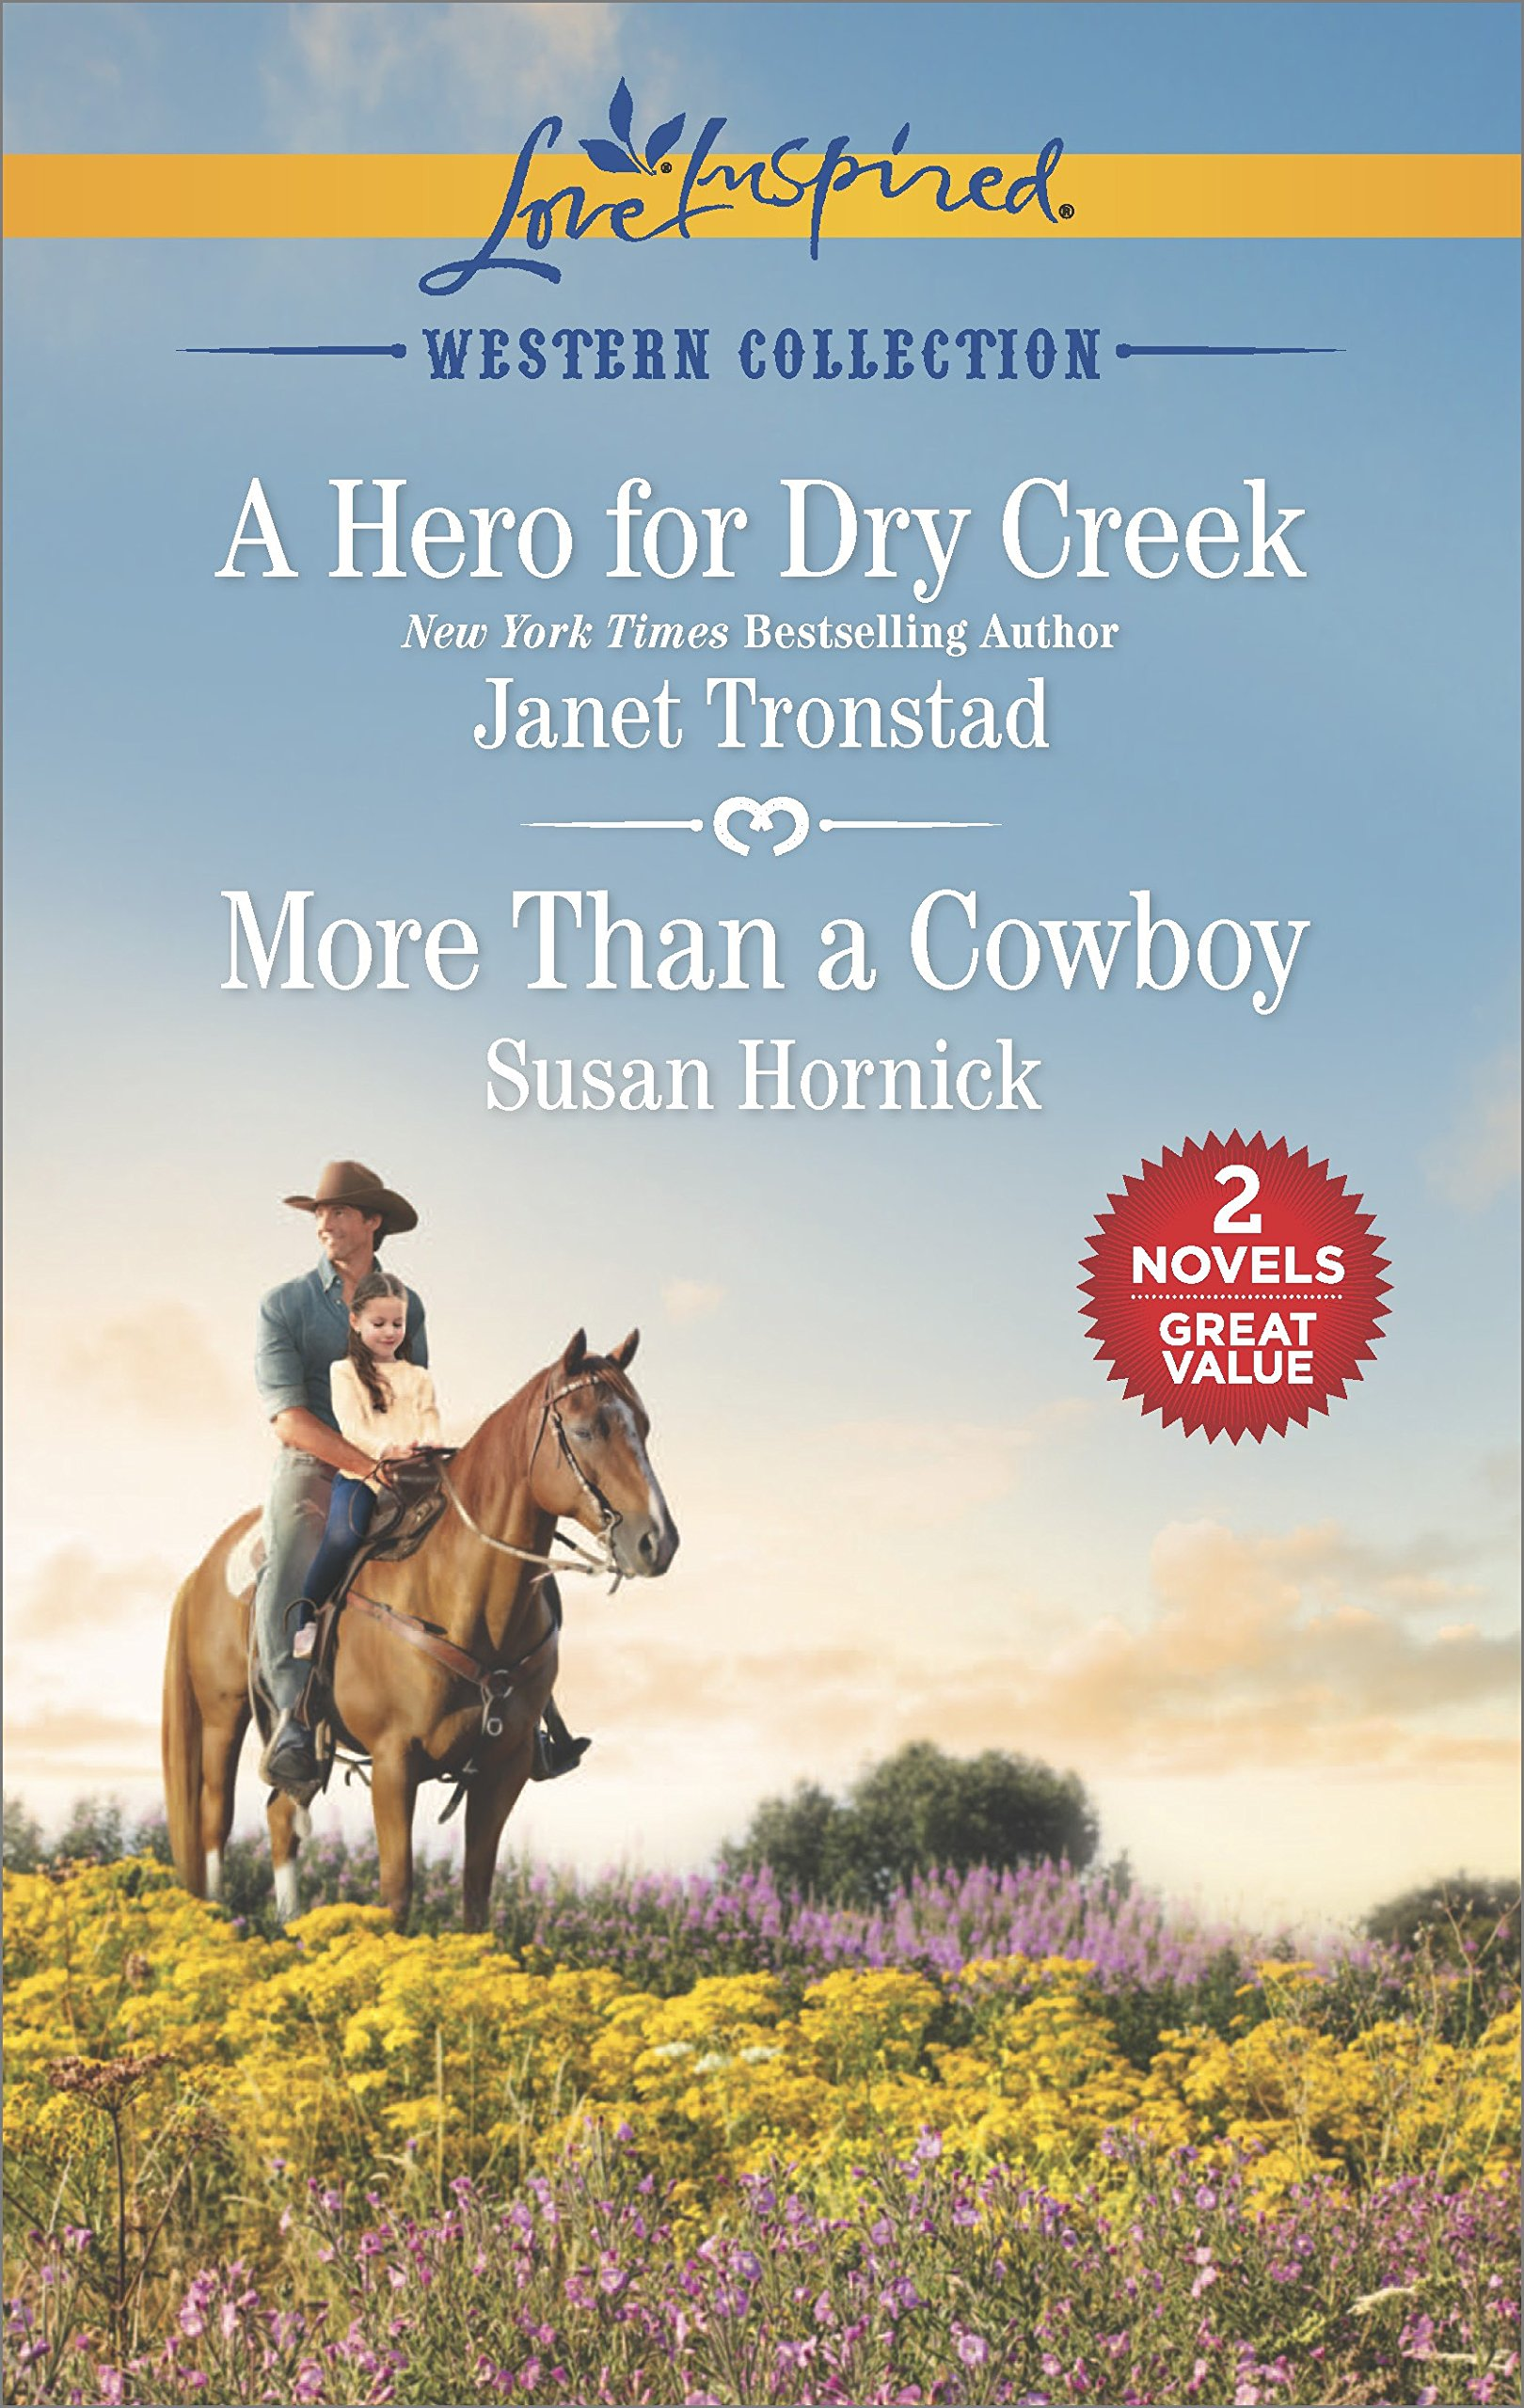 A Hero for Dry Creek & More Than a Cowboy (Western Collection) ebook